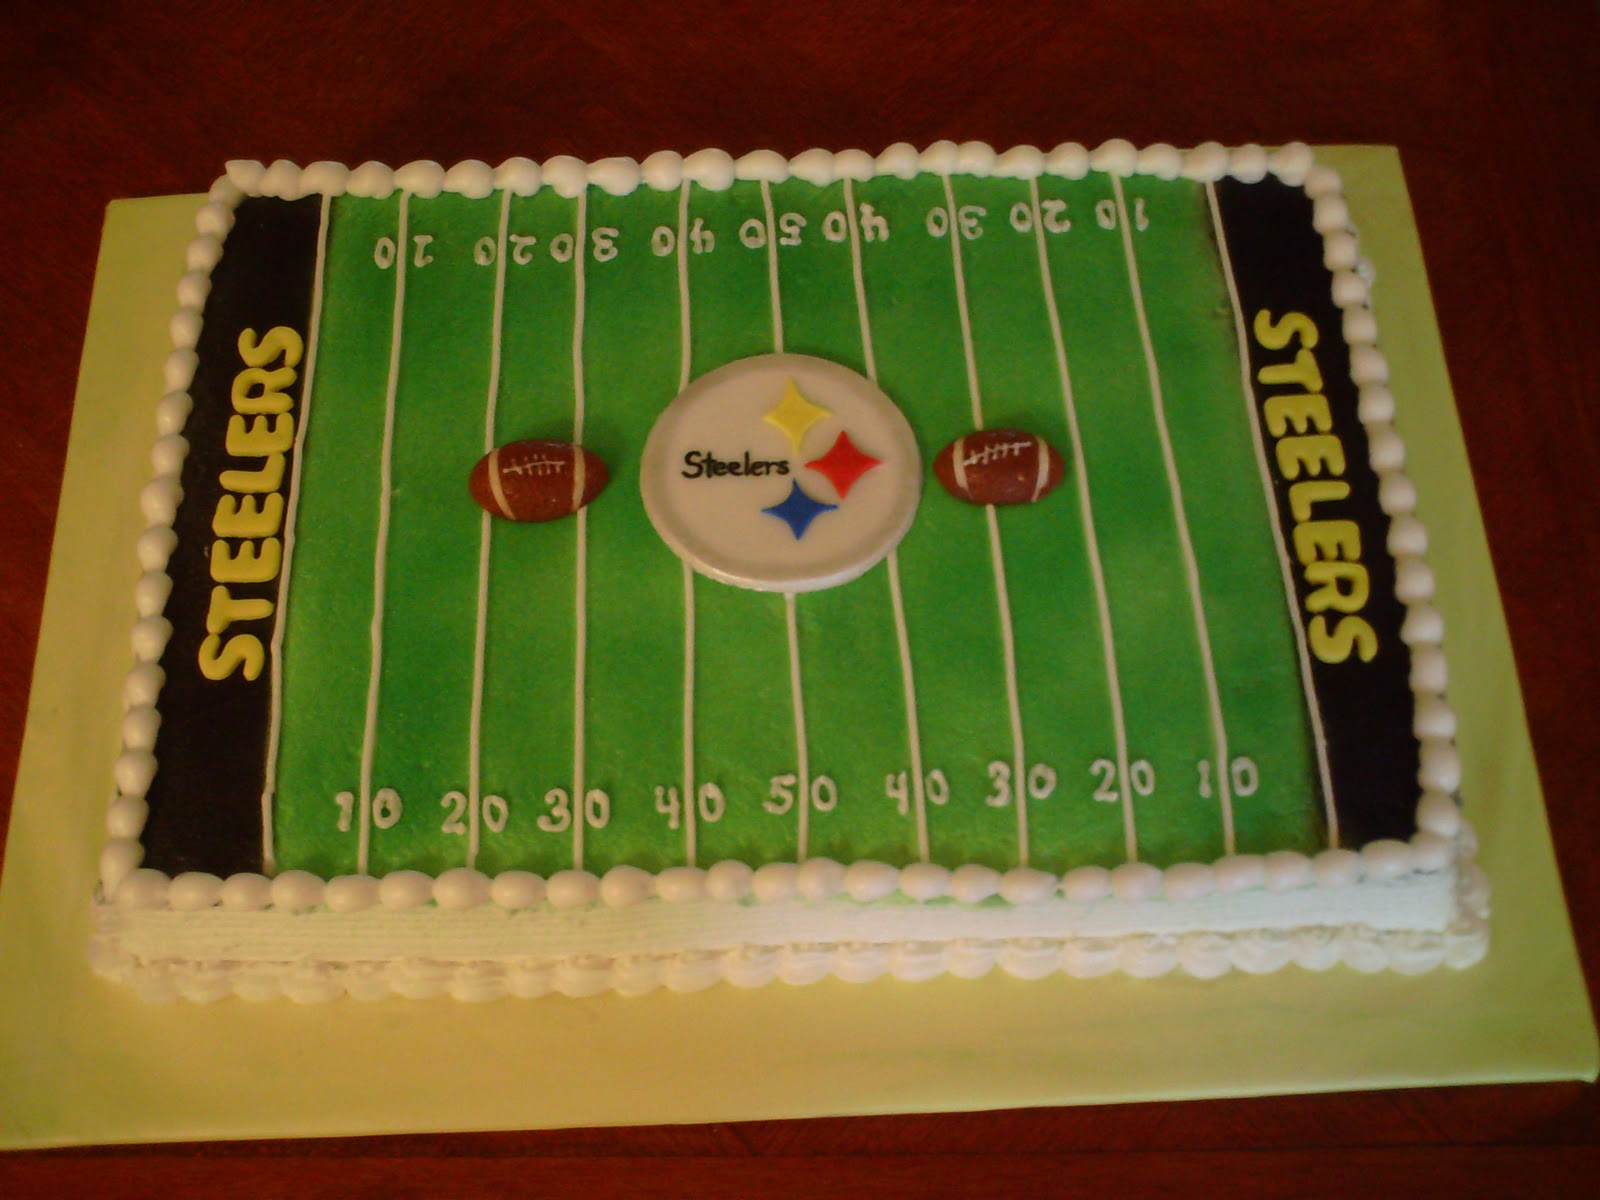 ArtnCake Pittsburgh Steelers Cake